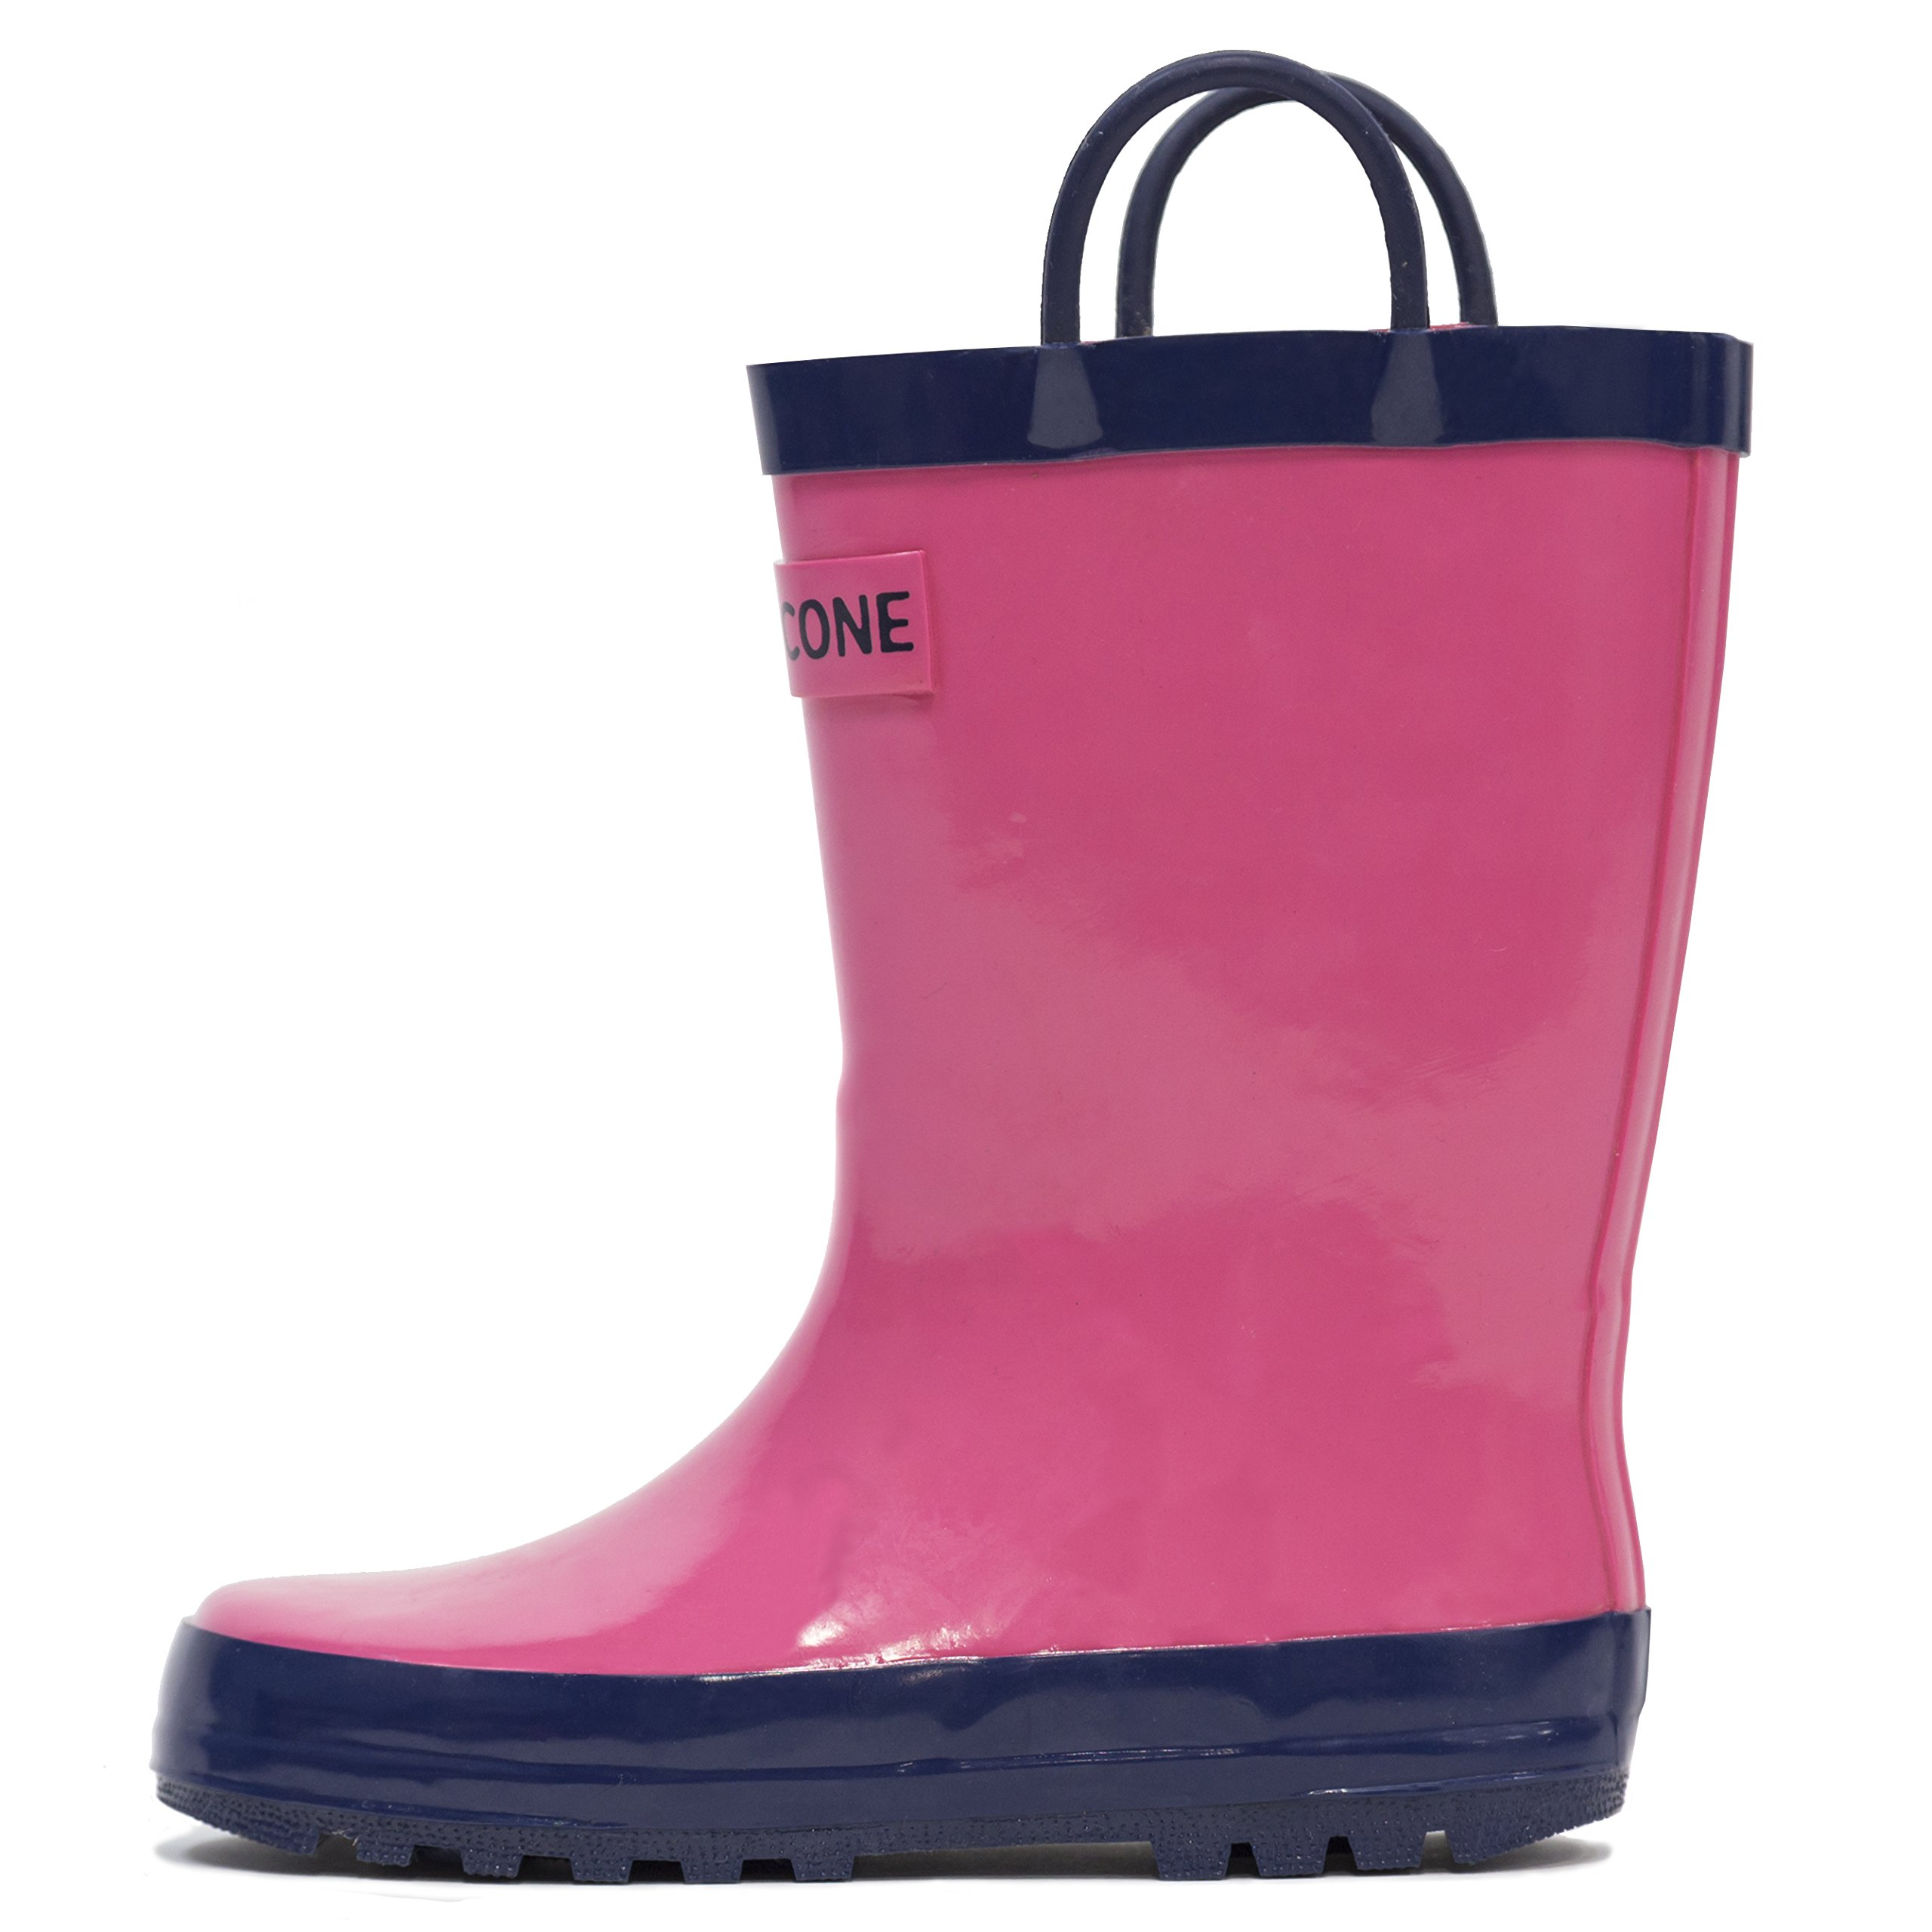 LONECONE Kids' Waterproof Rubber Rain Boots with Easy-On Handles, Bubblegum Pink, Toddler 10